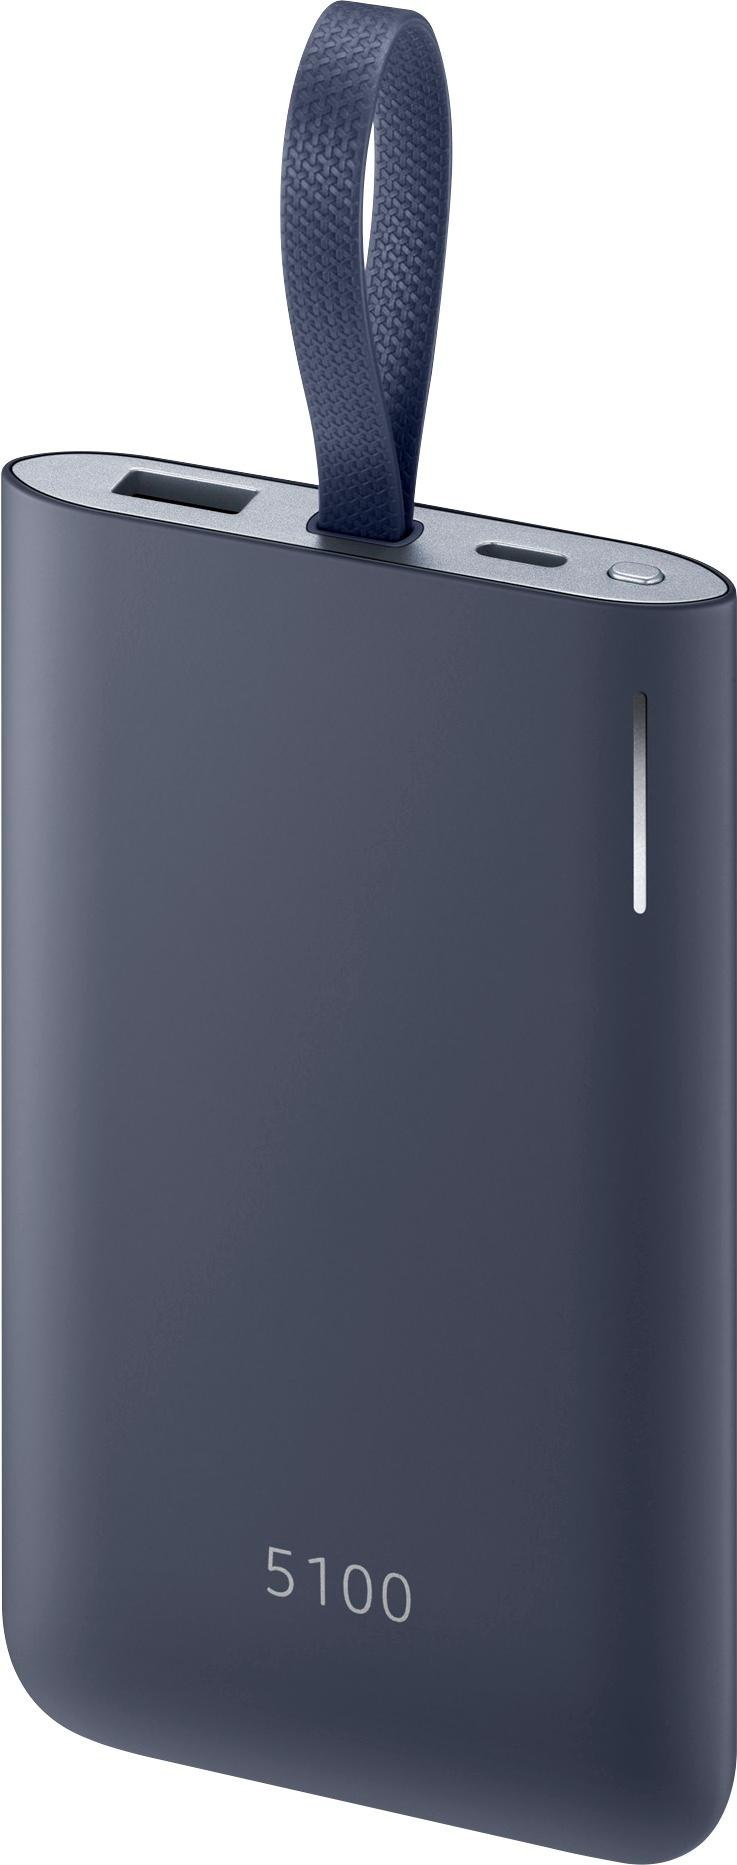 Change how you charge – Samsung portable battery pack lets you recharge your device quickly, so you can talk, text and surf longer when you're out and about. Save up to 20% on Samsung charging devices at Best Buy through Nov 4th